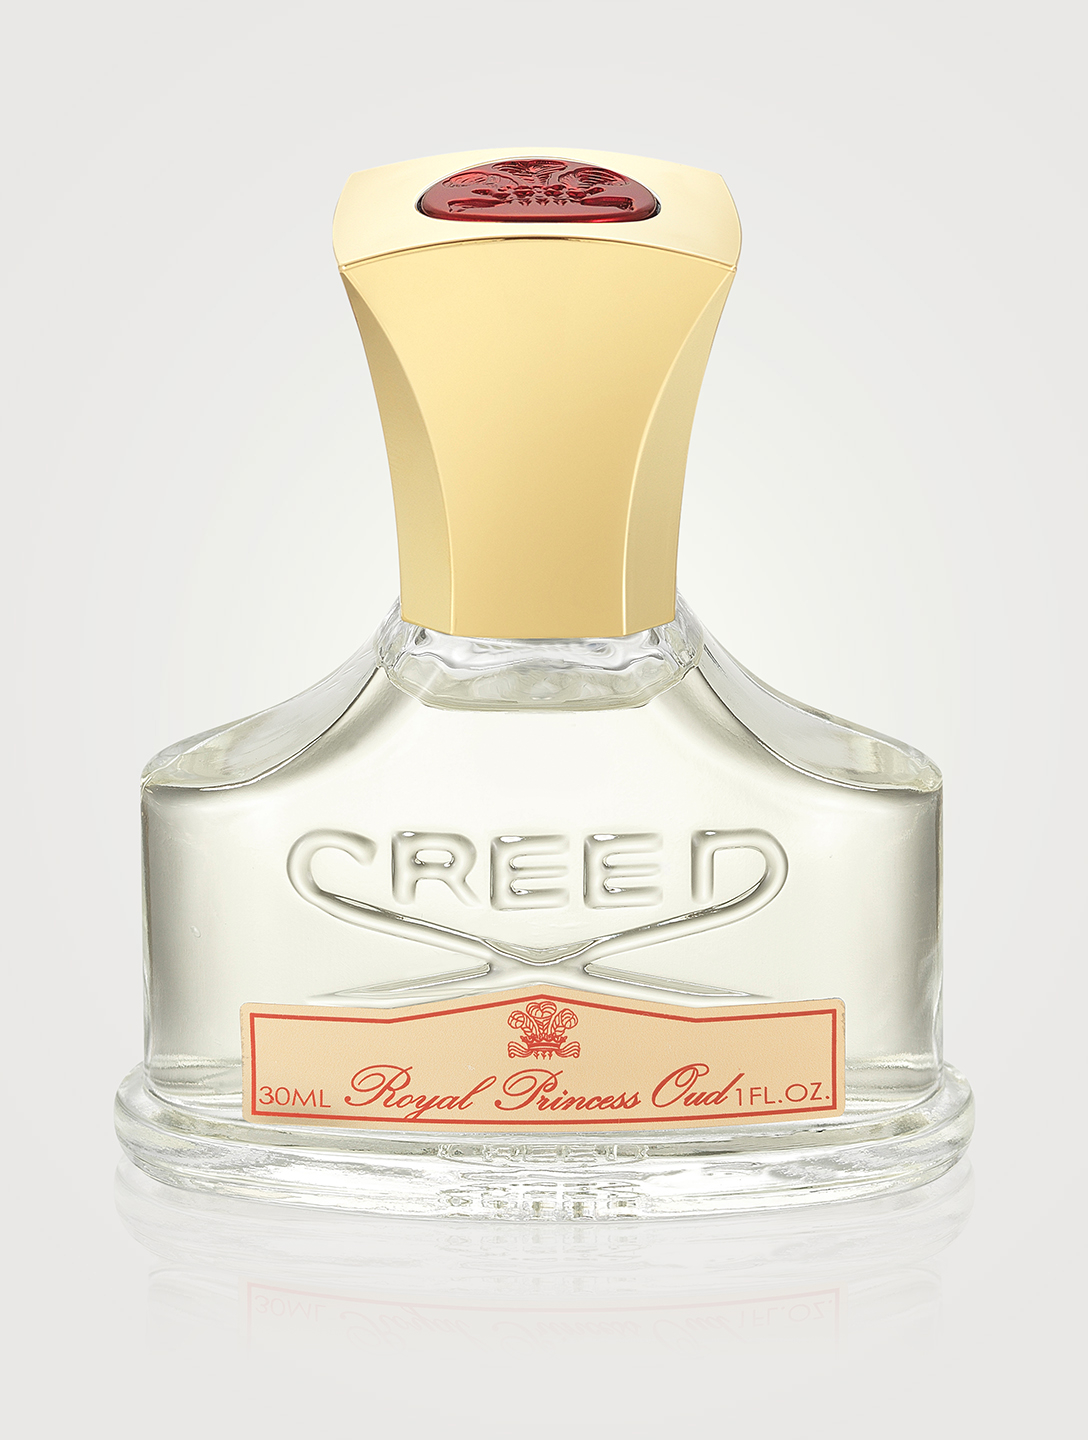 CREED Royal Princess Oud Eau de Parfum Designers